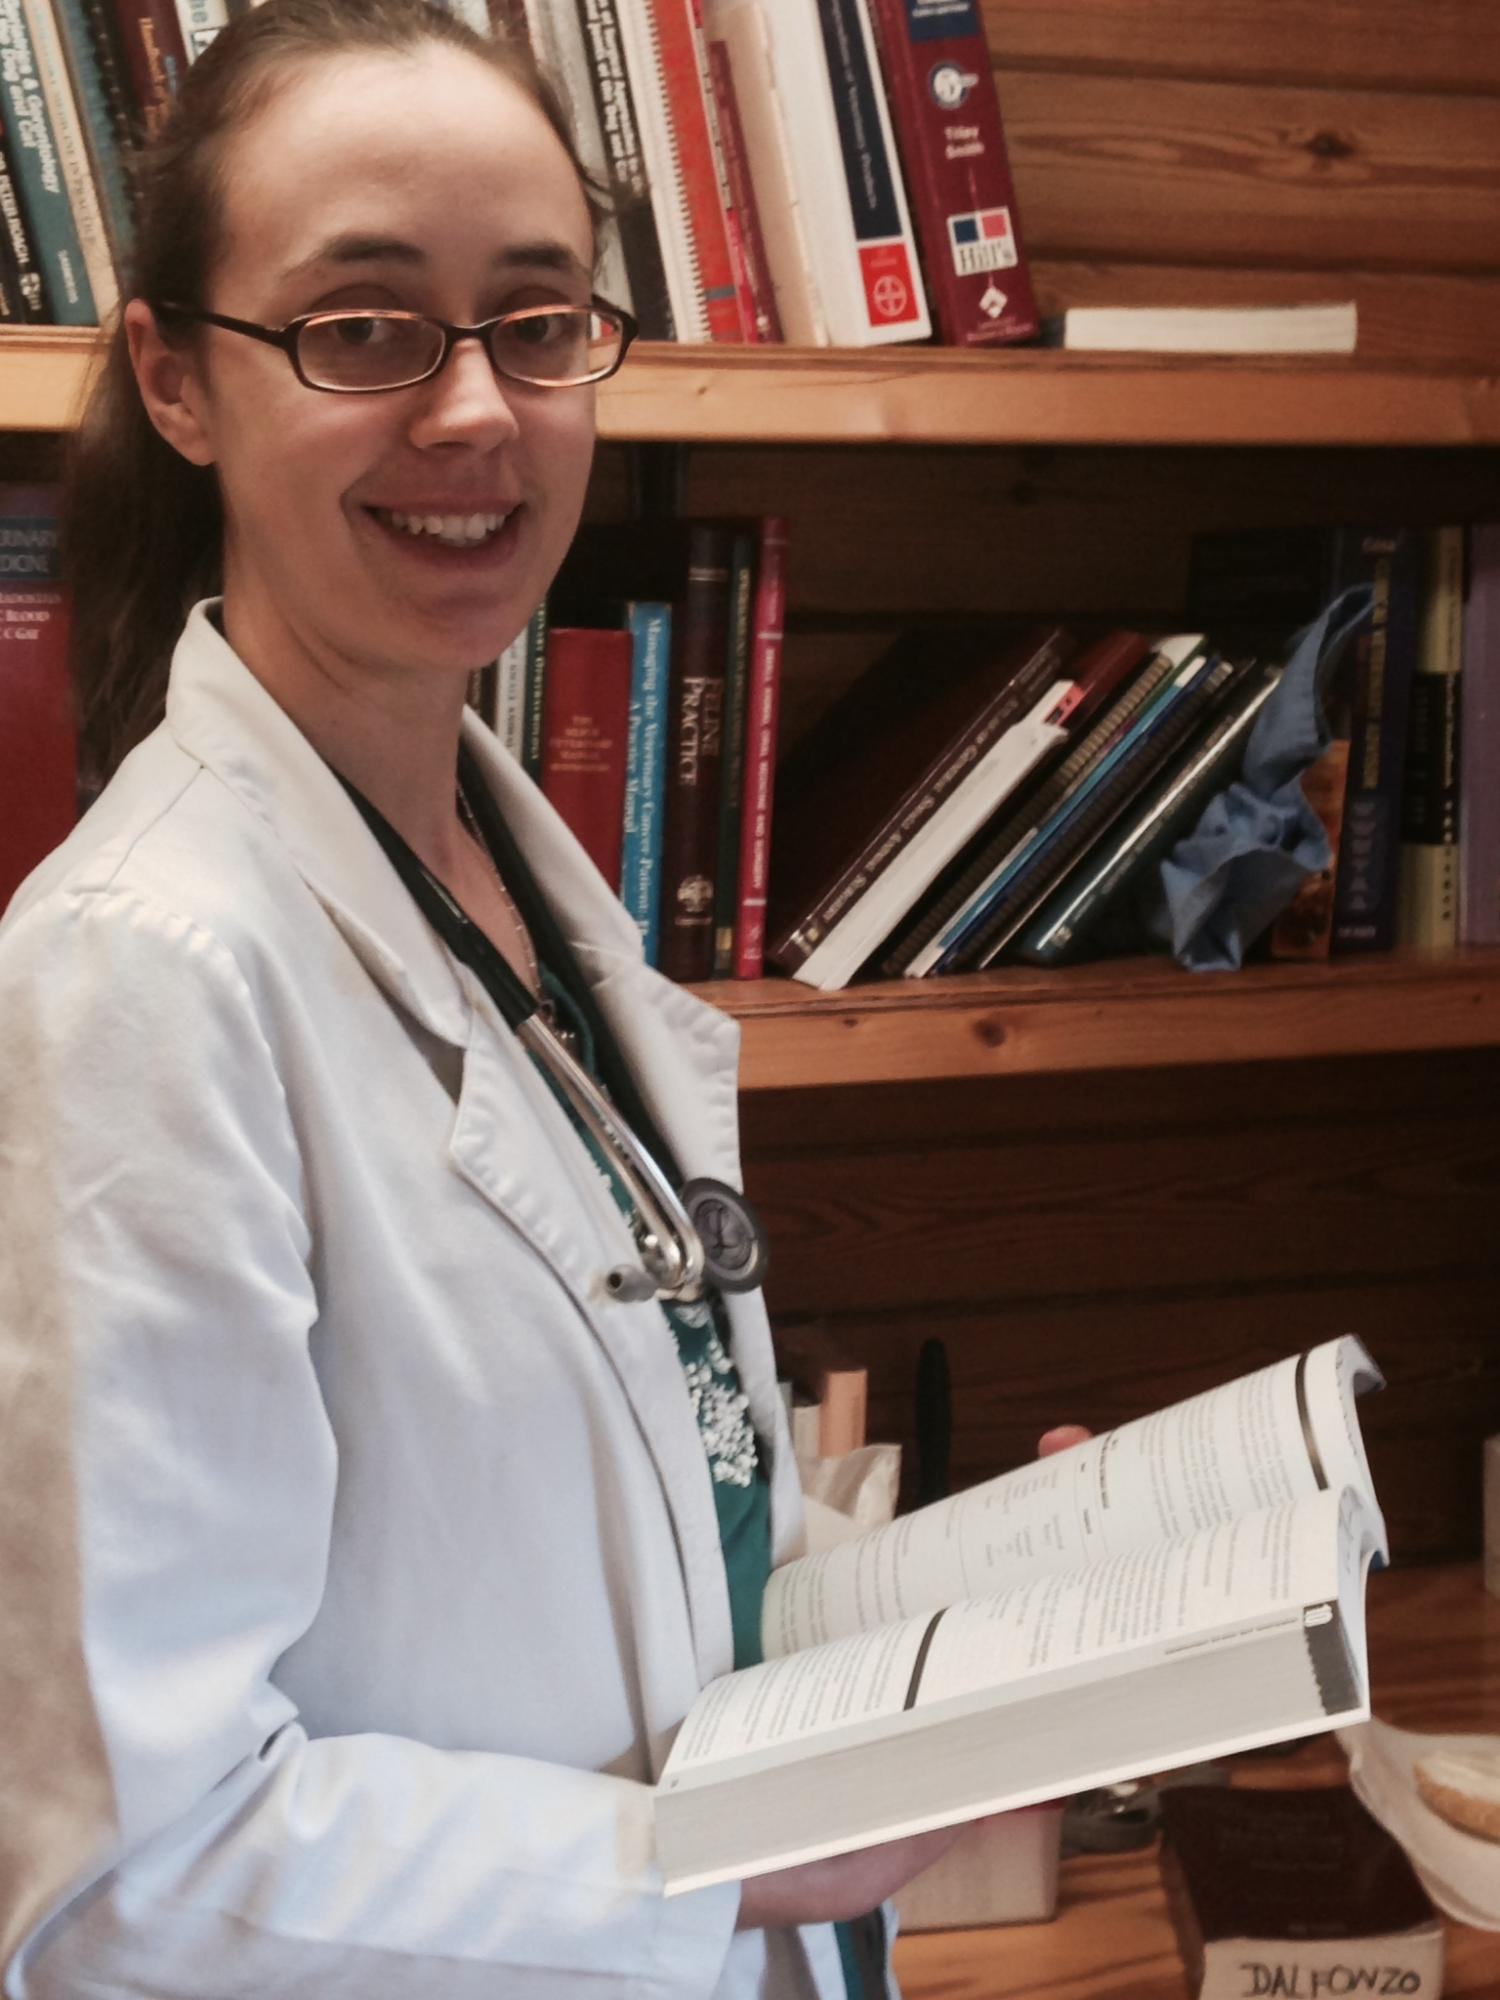 Dr.Devlyn D'Alfonzo is available for appointments Wednesday, Thursday and Friday.